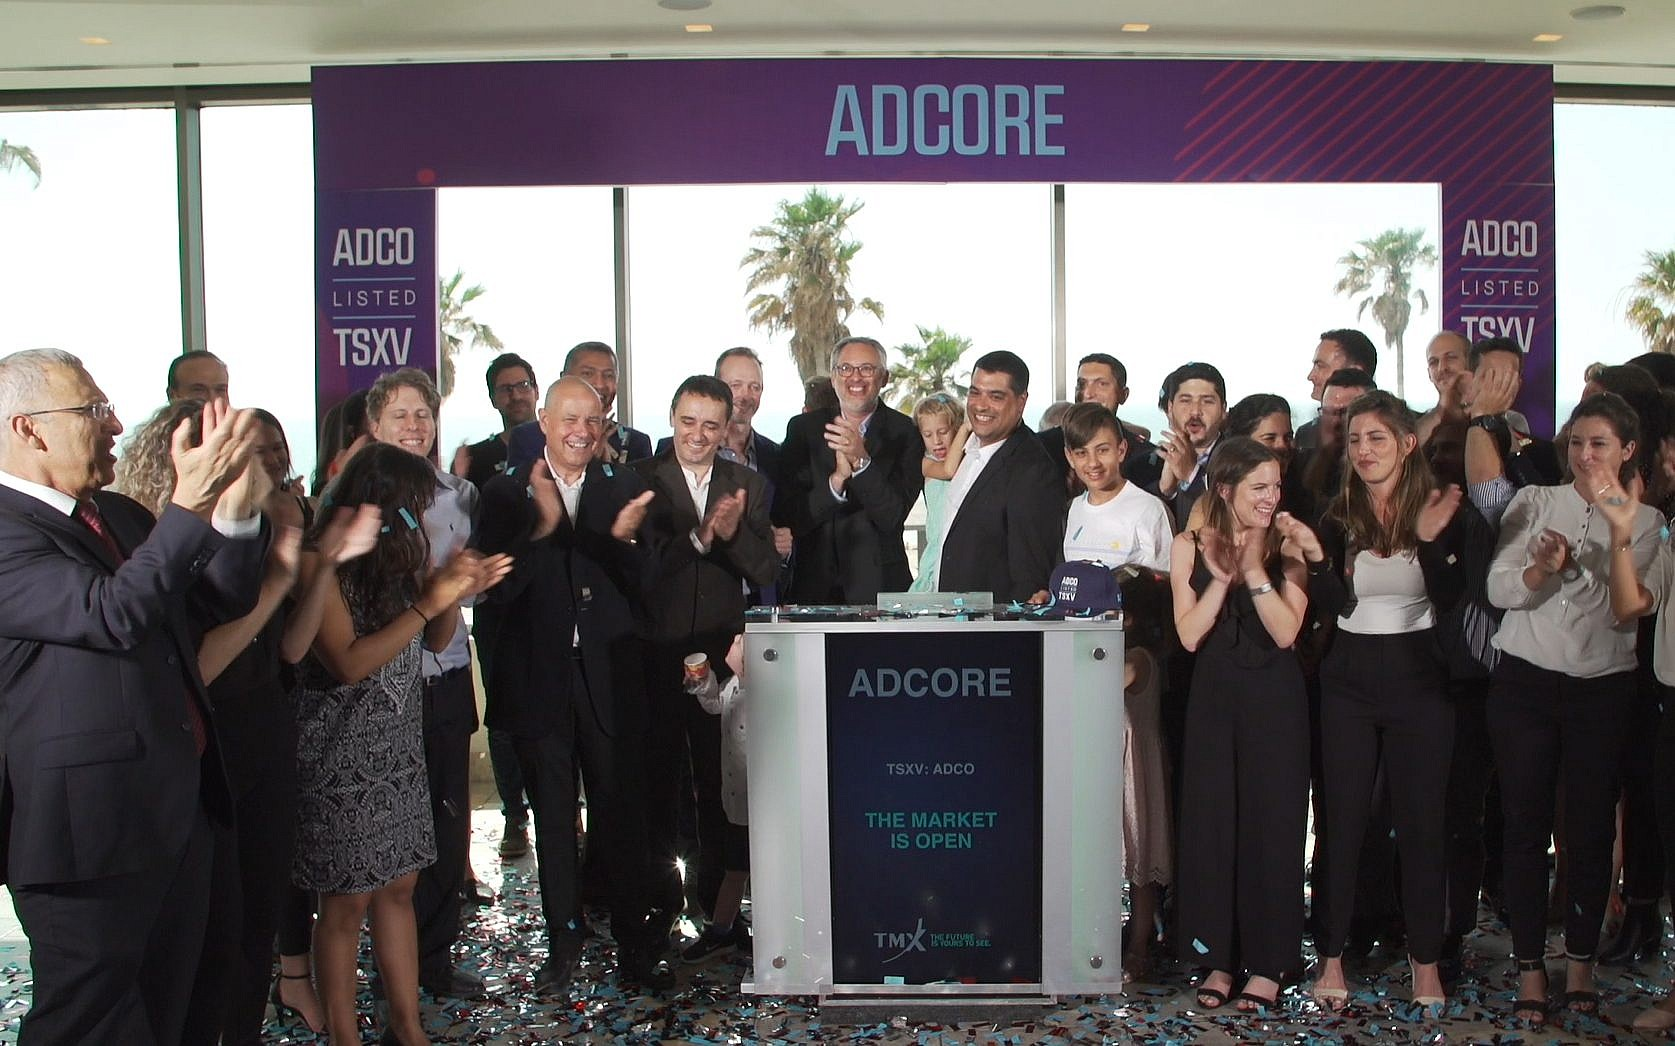 87ecbffa3069 The Toronto exchanges TSX and TSXV hold remote market openings in Tel Aviv  on 29 May